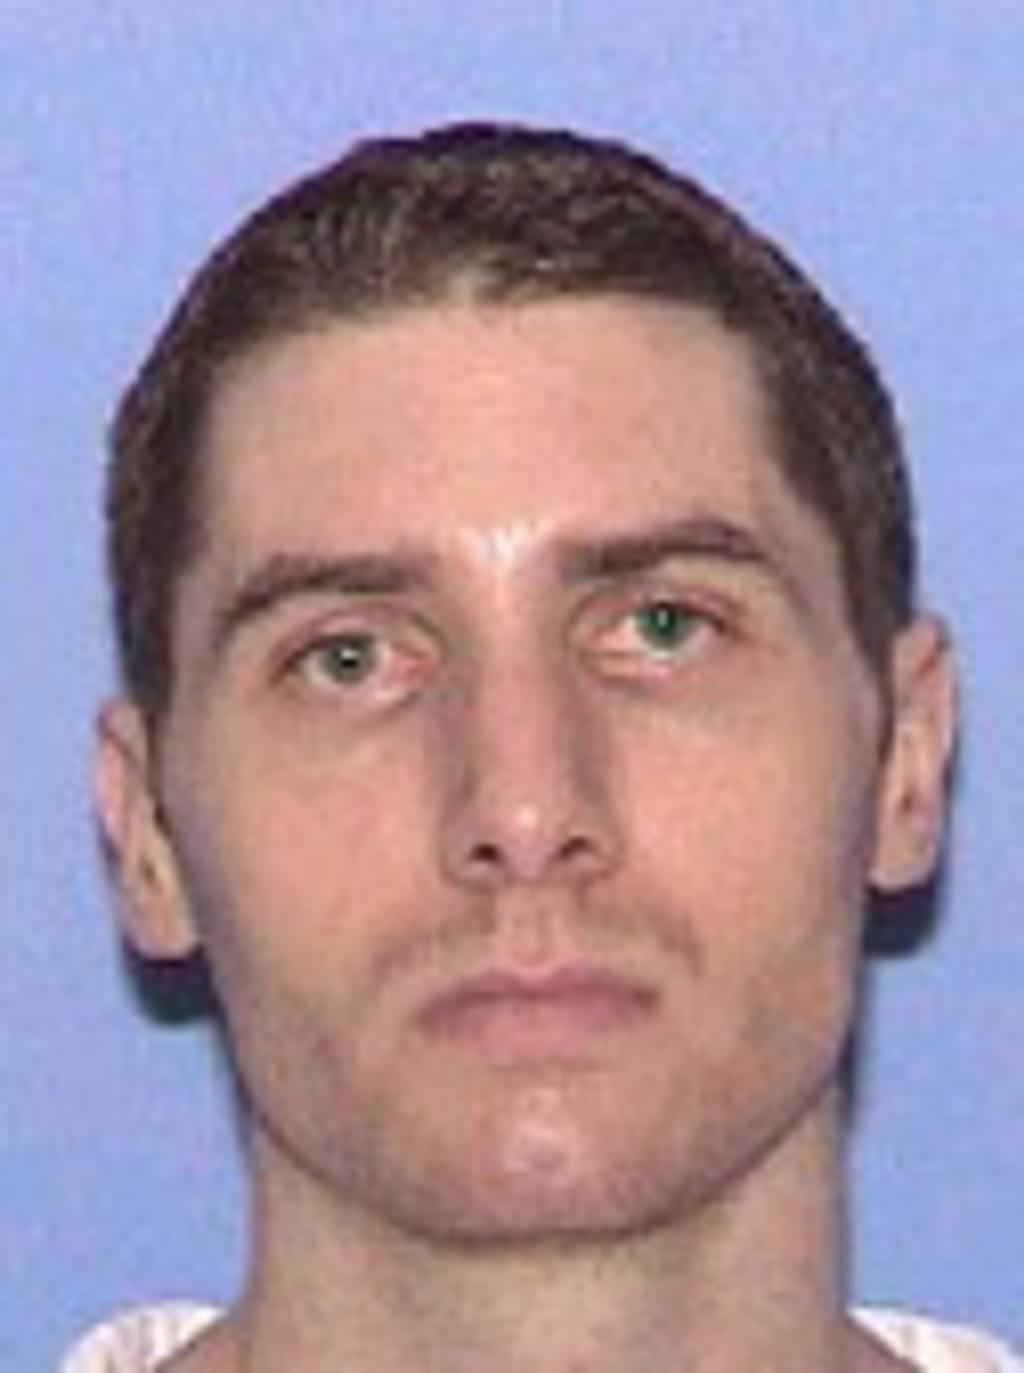 Justen Hall Executed in Second 2019 Texas Case to Raise Questions of Competency